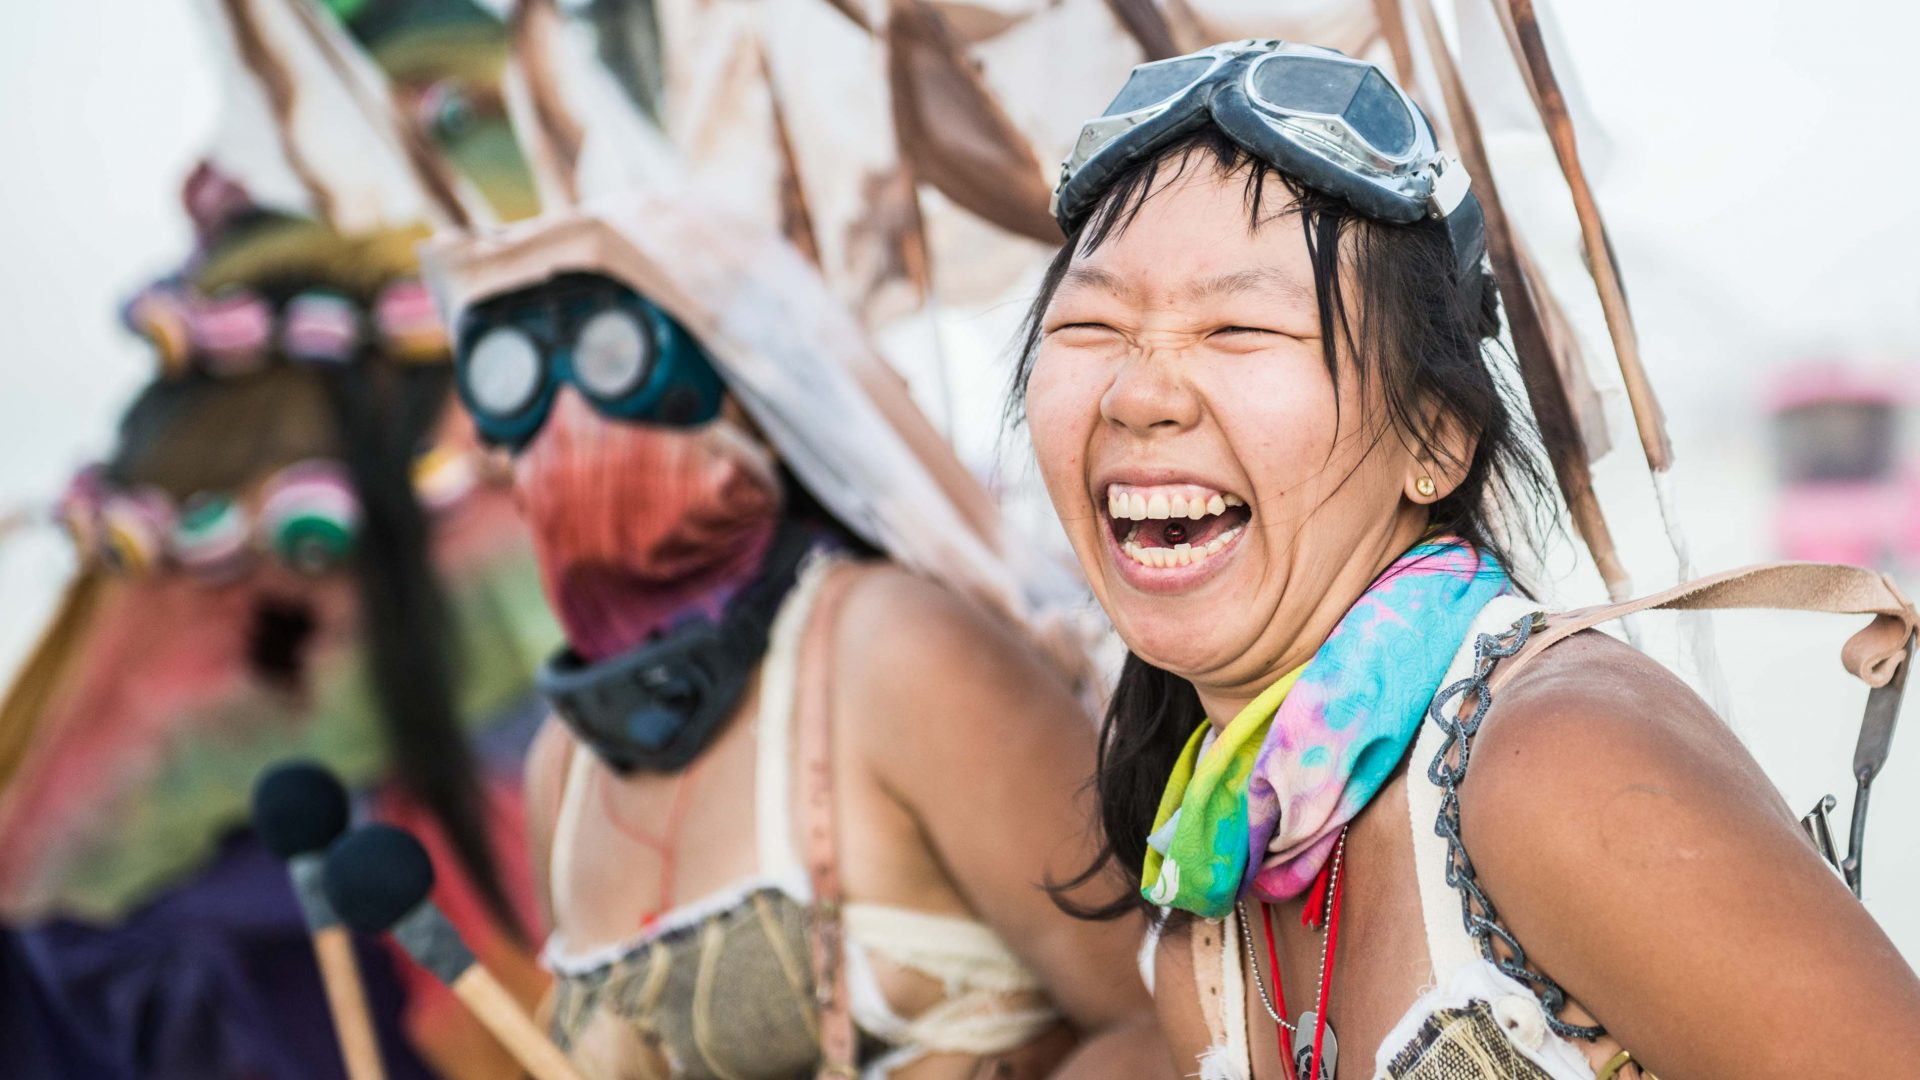 A woman laughs during a parade through the streets of Burning Man.